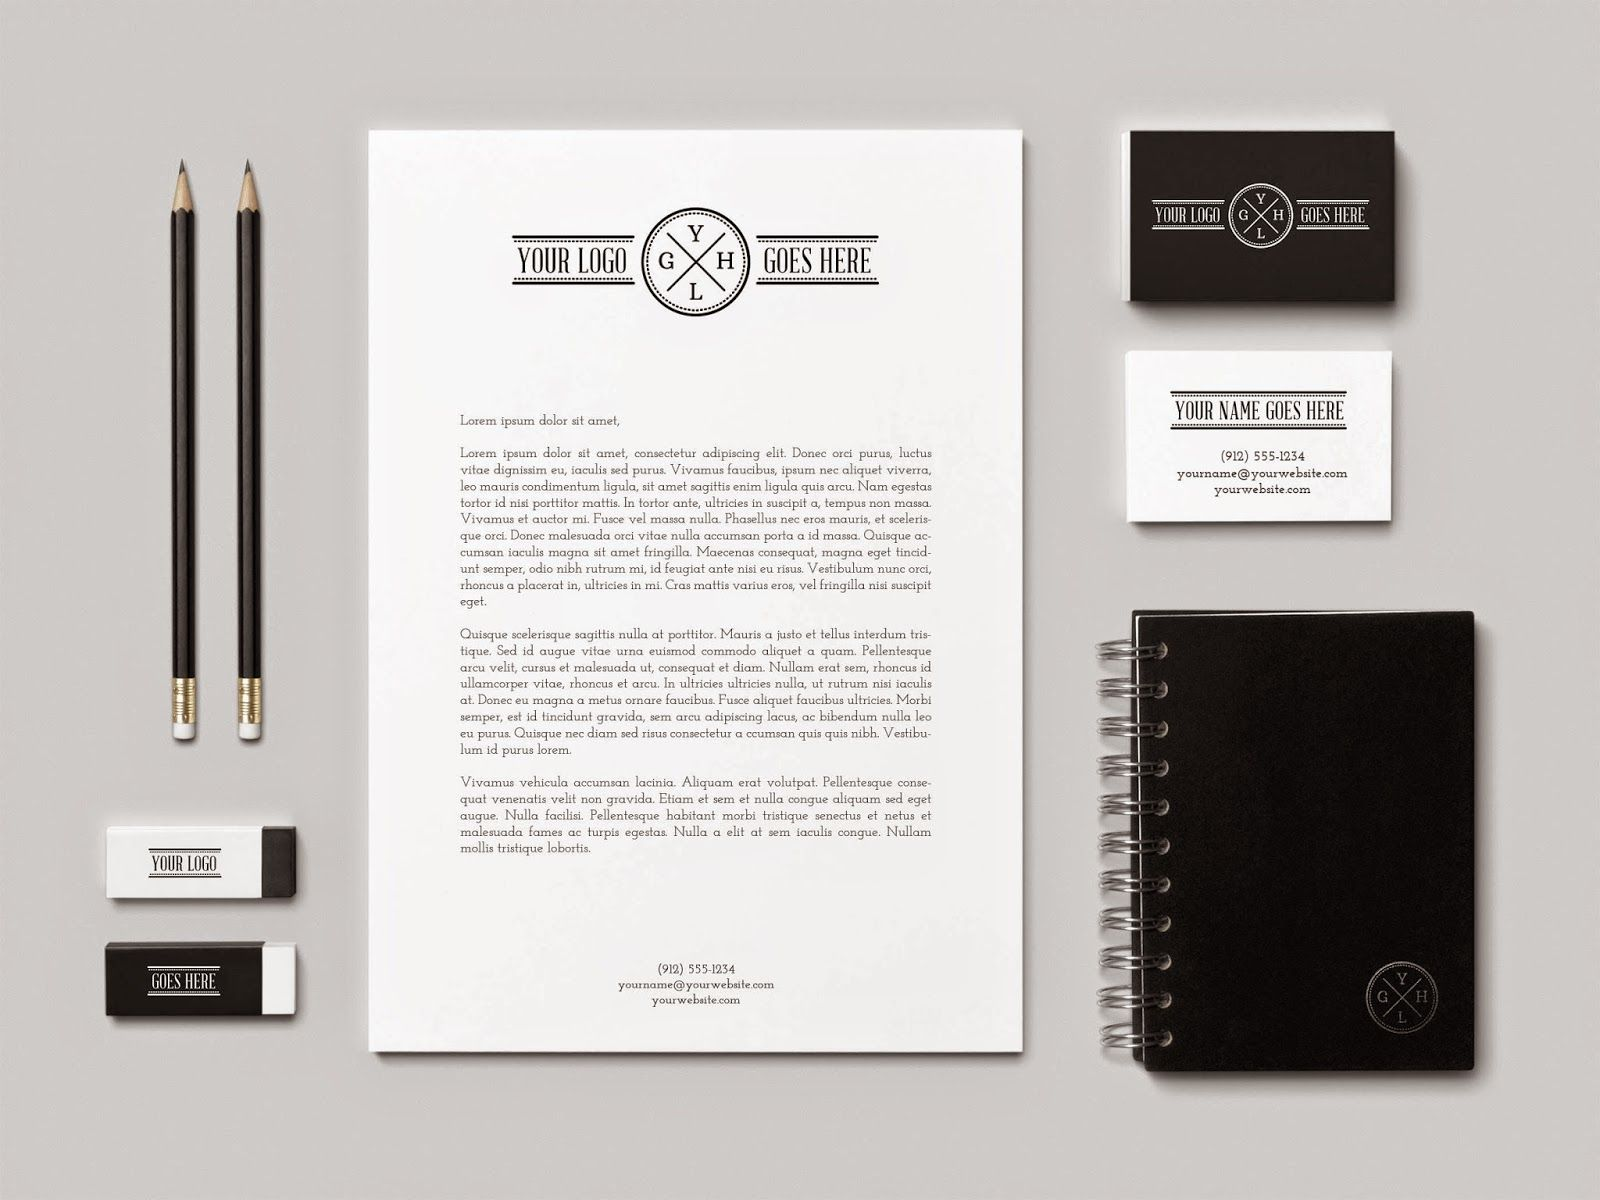 Realistic Branding Identity MockUp – Stationery Templates for Designers